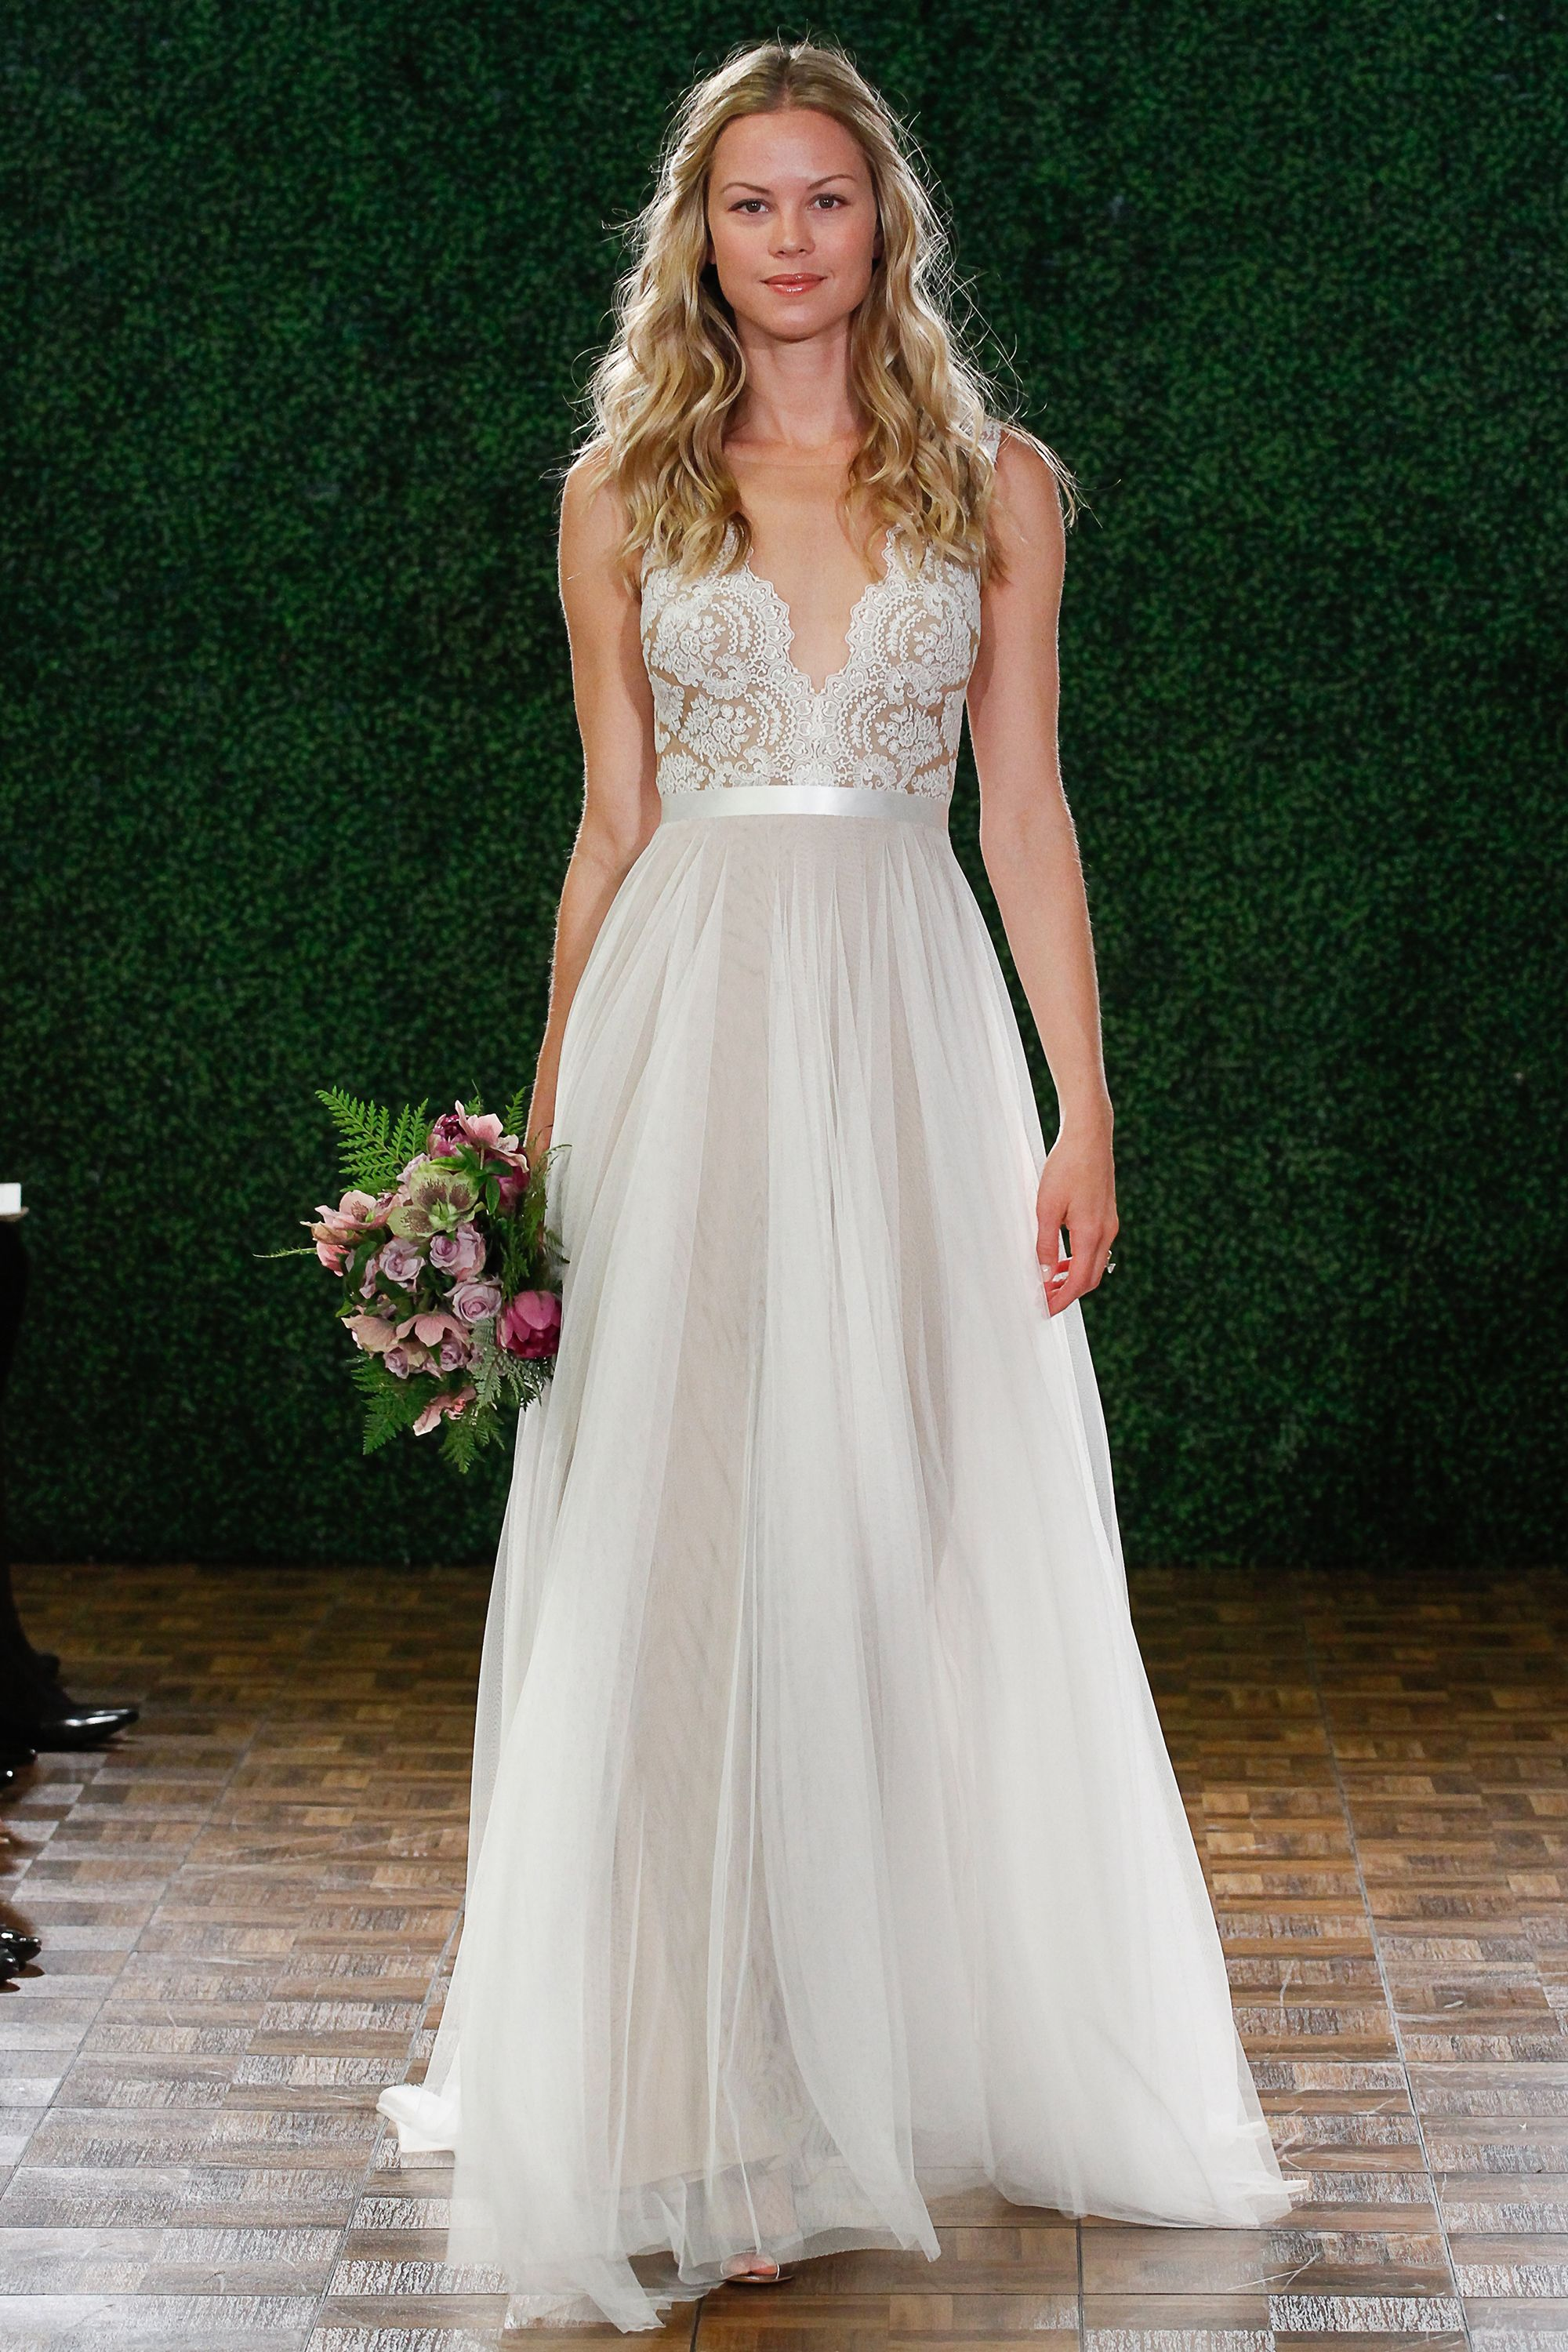 The 25 Most Popular Wedding Gowns of 2014 | Gowns, Weddings and ...